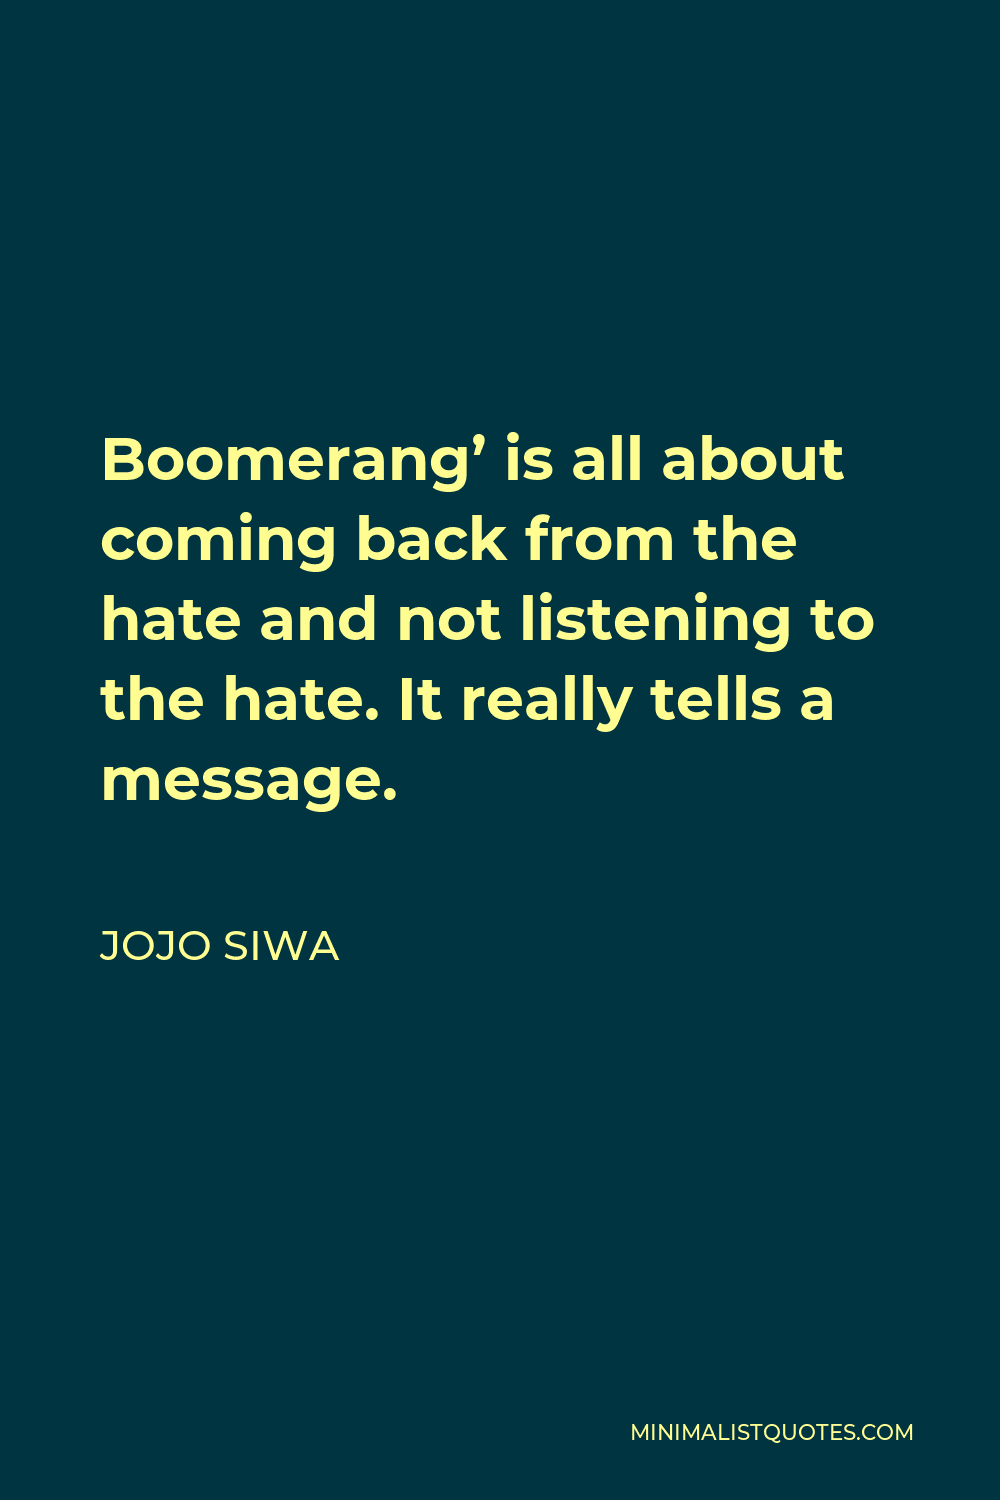 JoJo Siwa Quote - Boomerang' is all about coming back from the hate and not listening to the hate. It really tells a message.